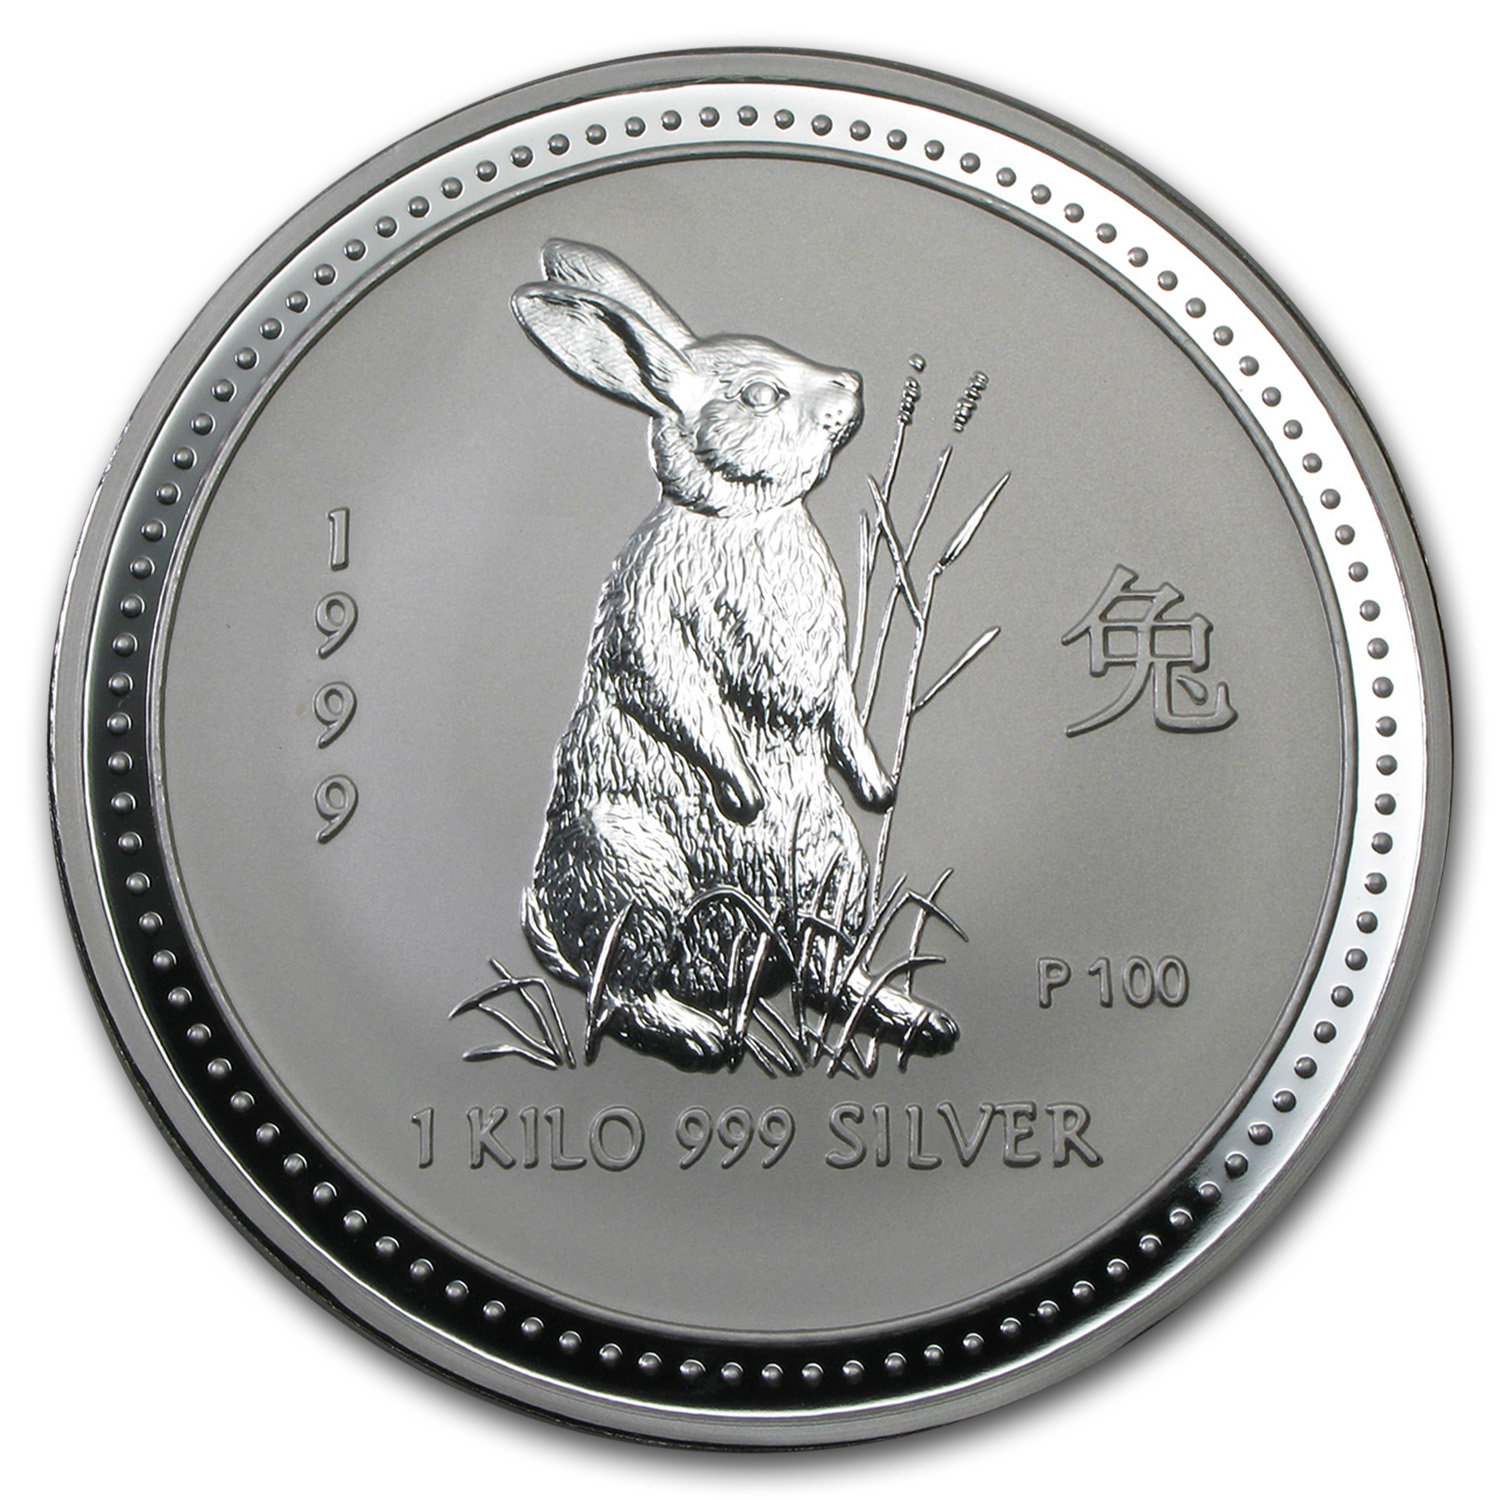 1999 Australia 1 kilo Silver Year of the Rabbit BU